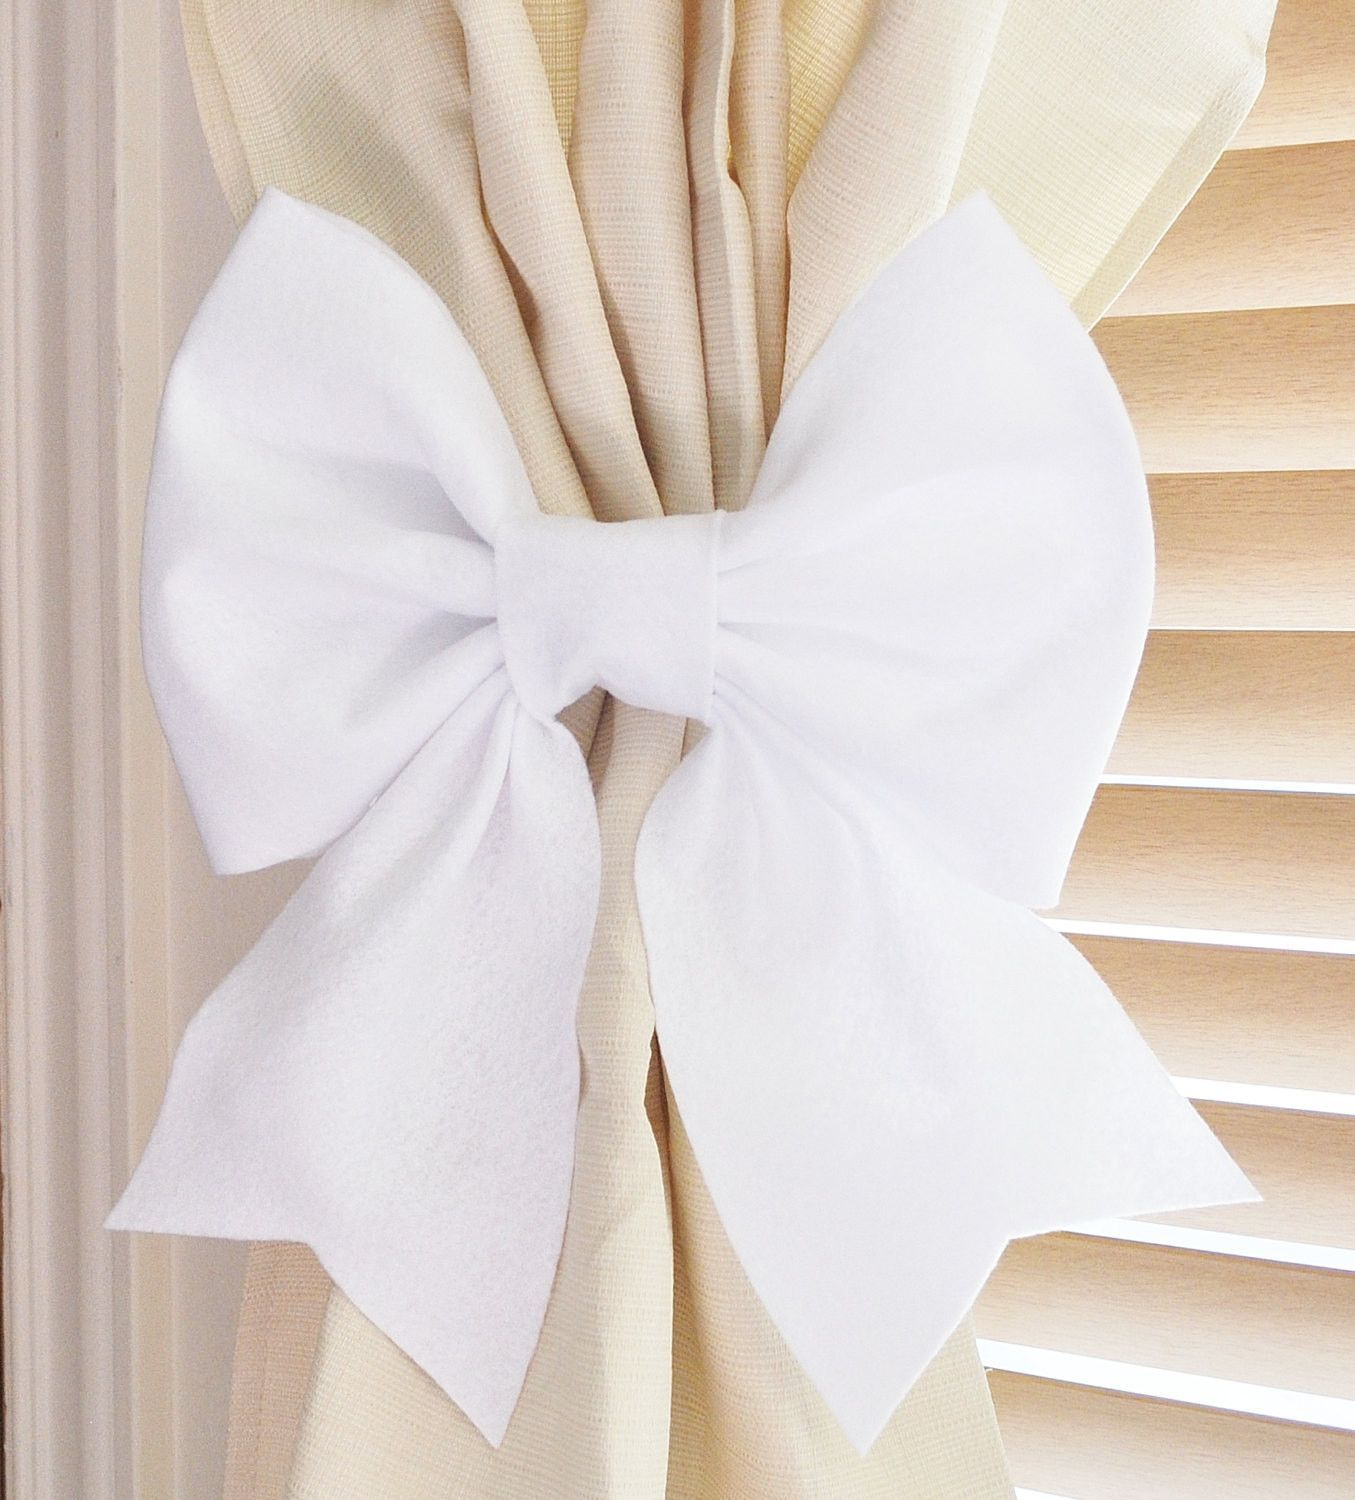 Baby Nursery Curtain Tie Backs Two White Bow Curtain Tie Backs Decorative Tiebacks Curtain